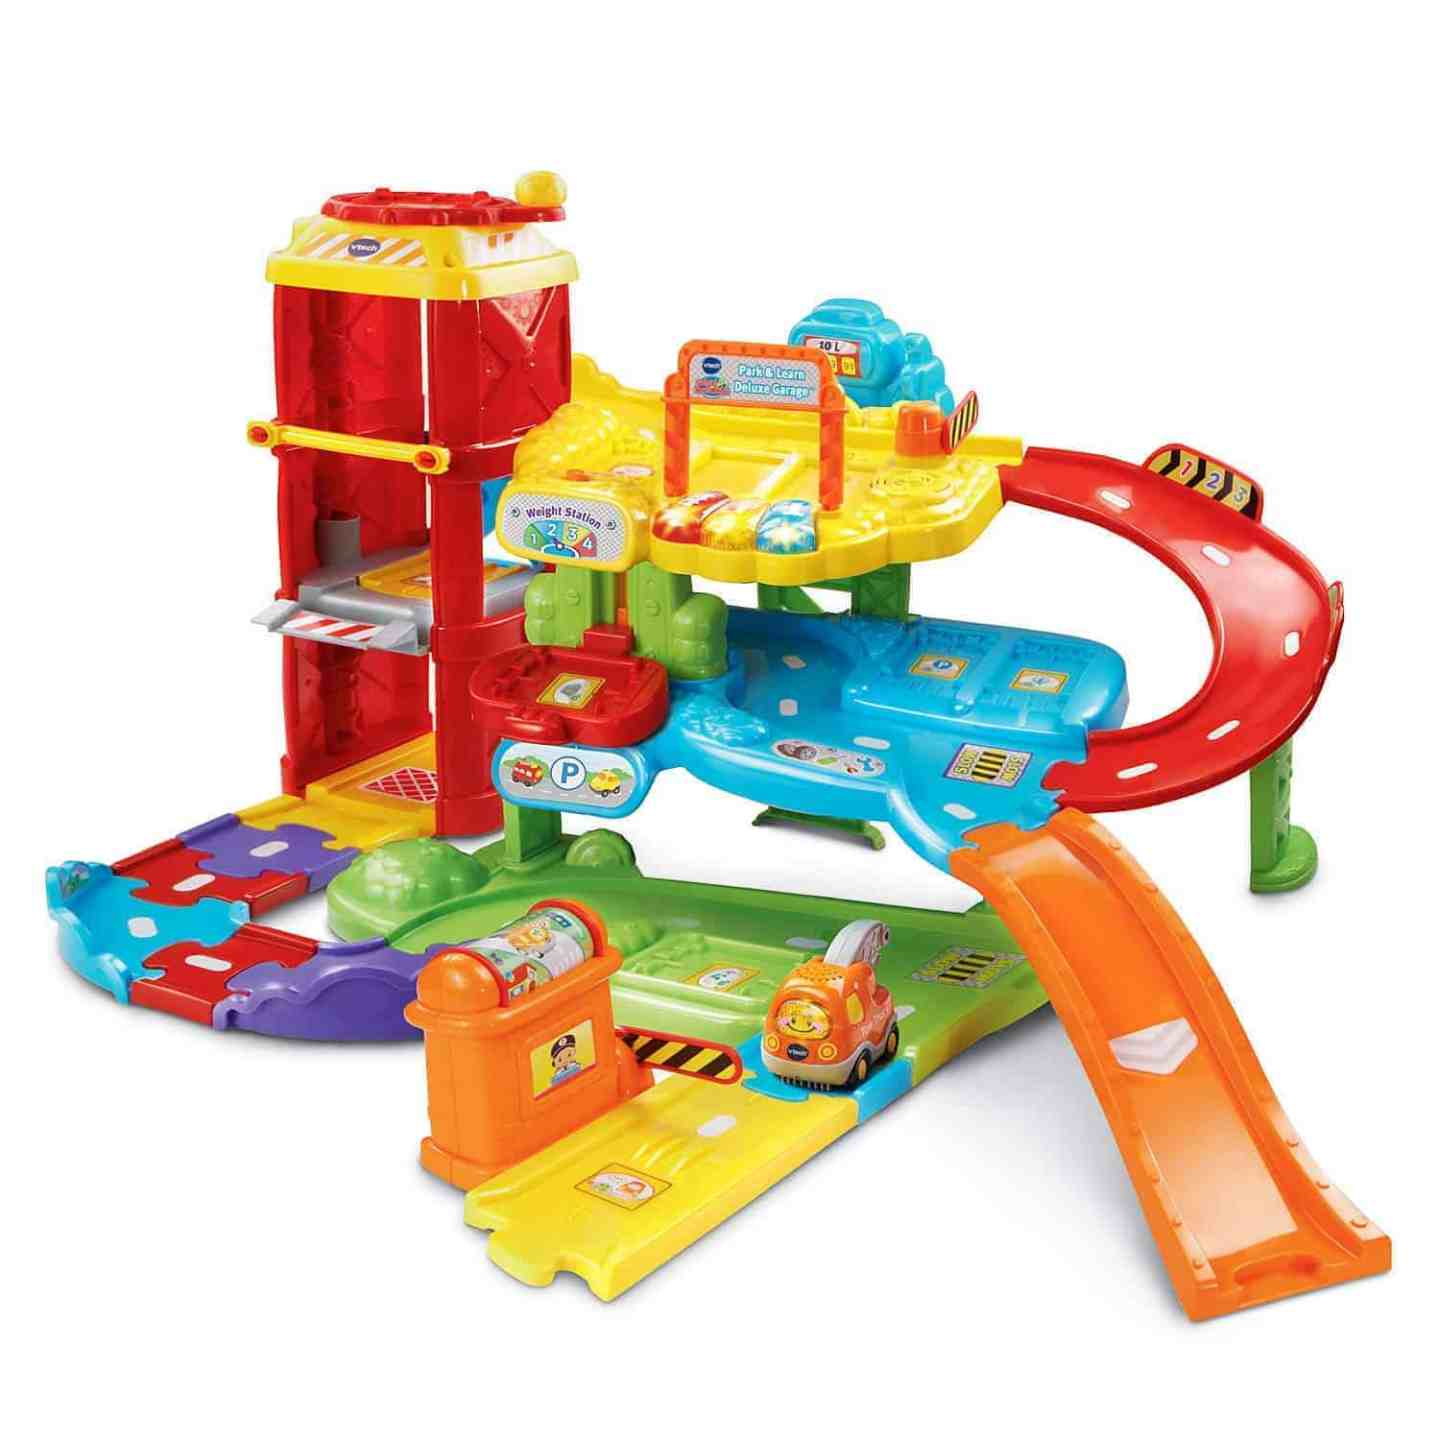 VTech Smart Wheels Garage